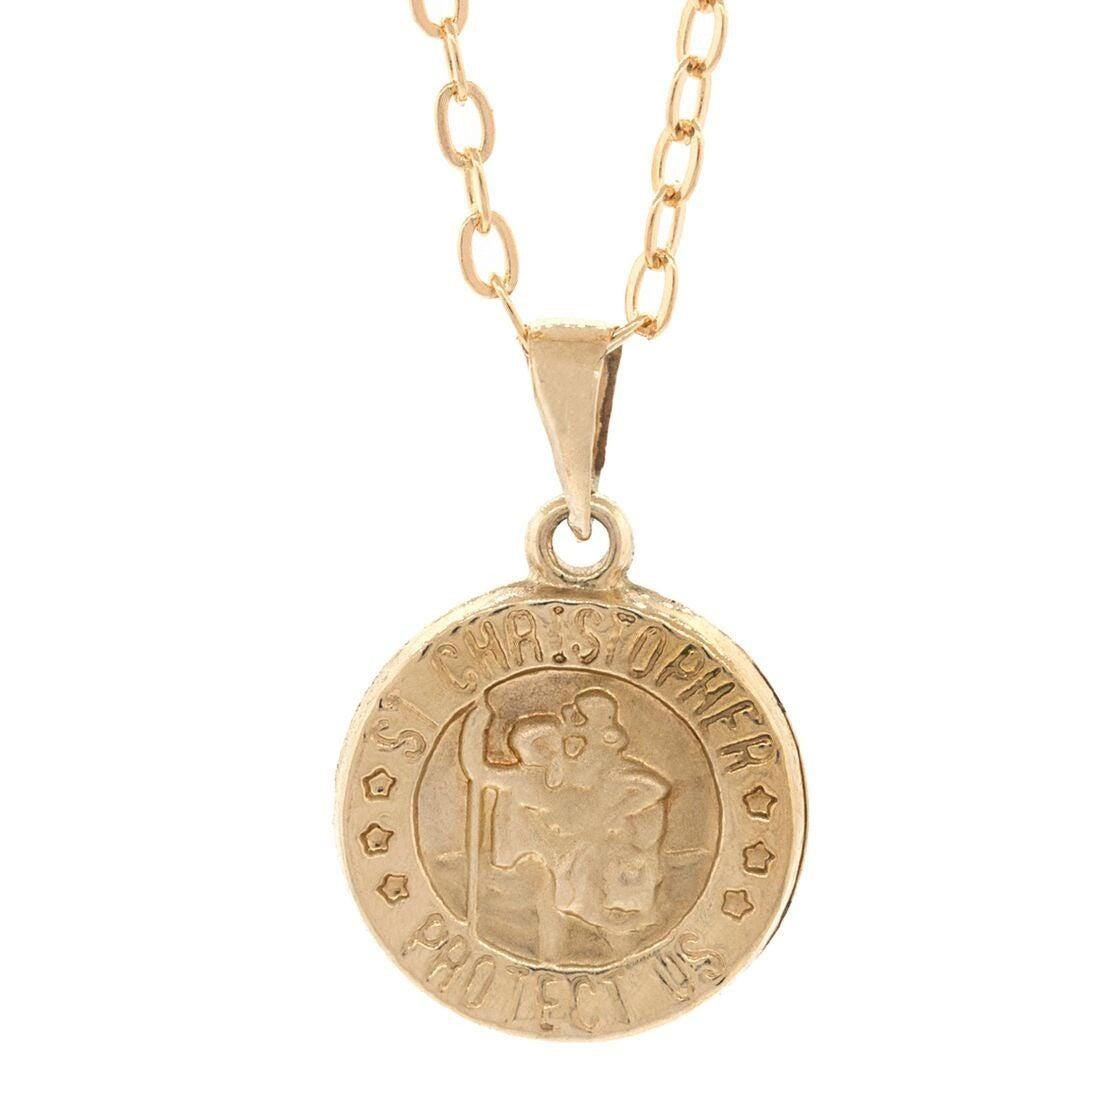 image saint collection christopher medallion pendants pendant jewellery gentile silver rectangular